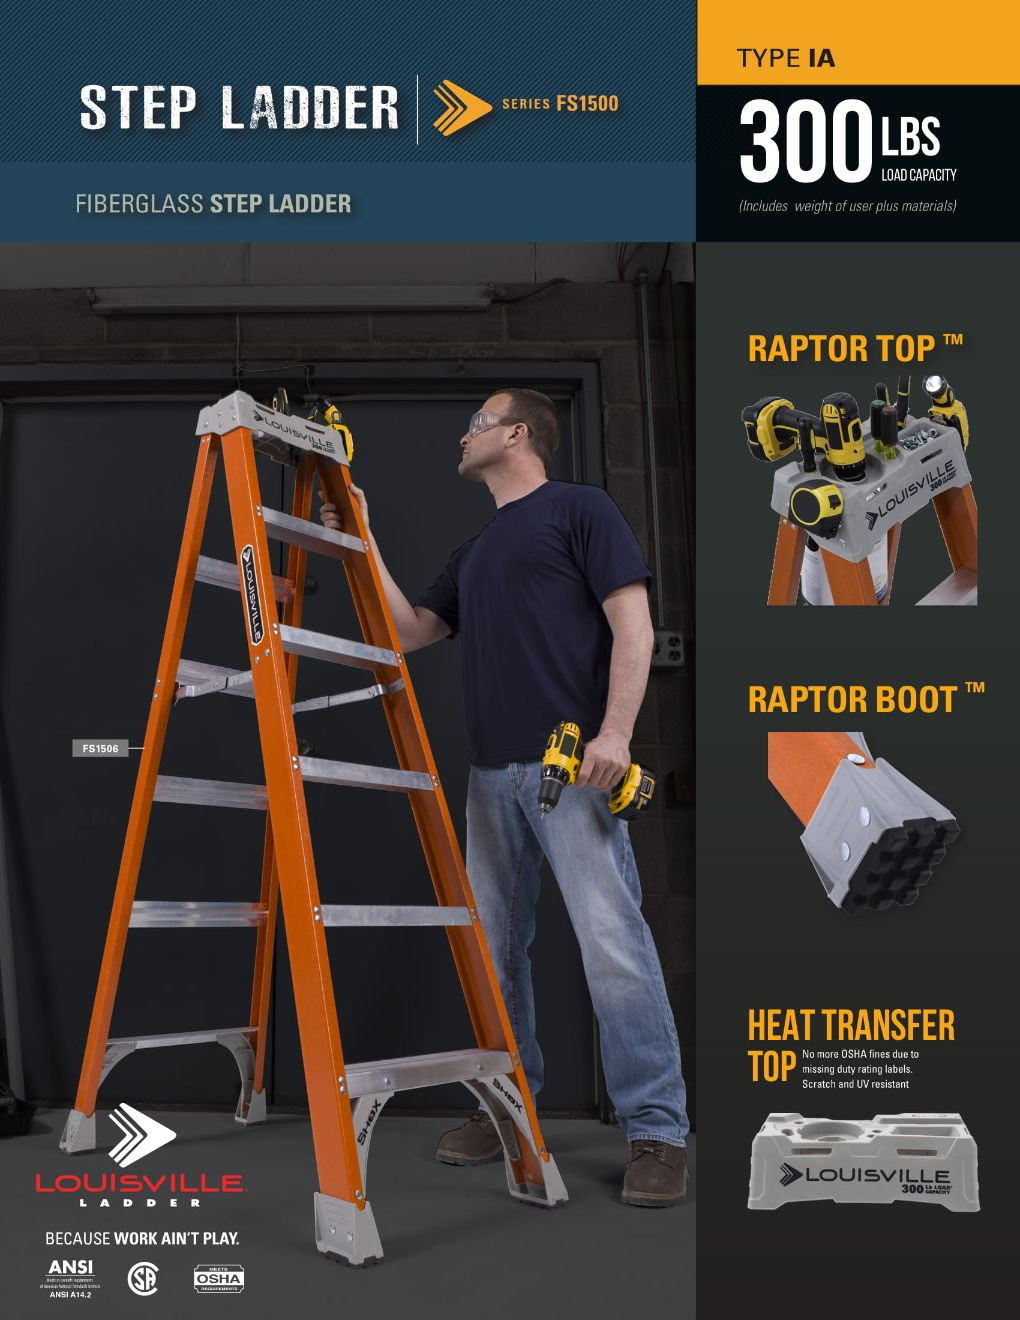 FS1500 Step Ladder Flyer and Spec Sheet Marketing Material Image